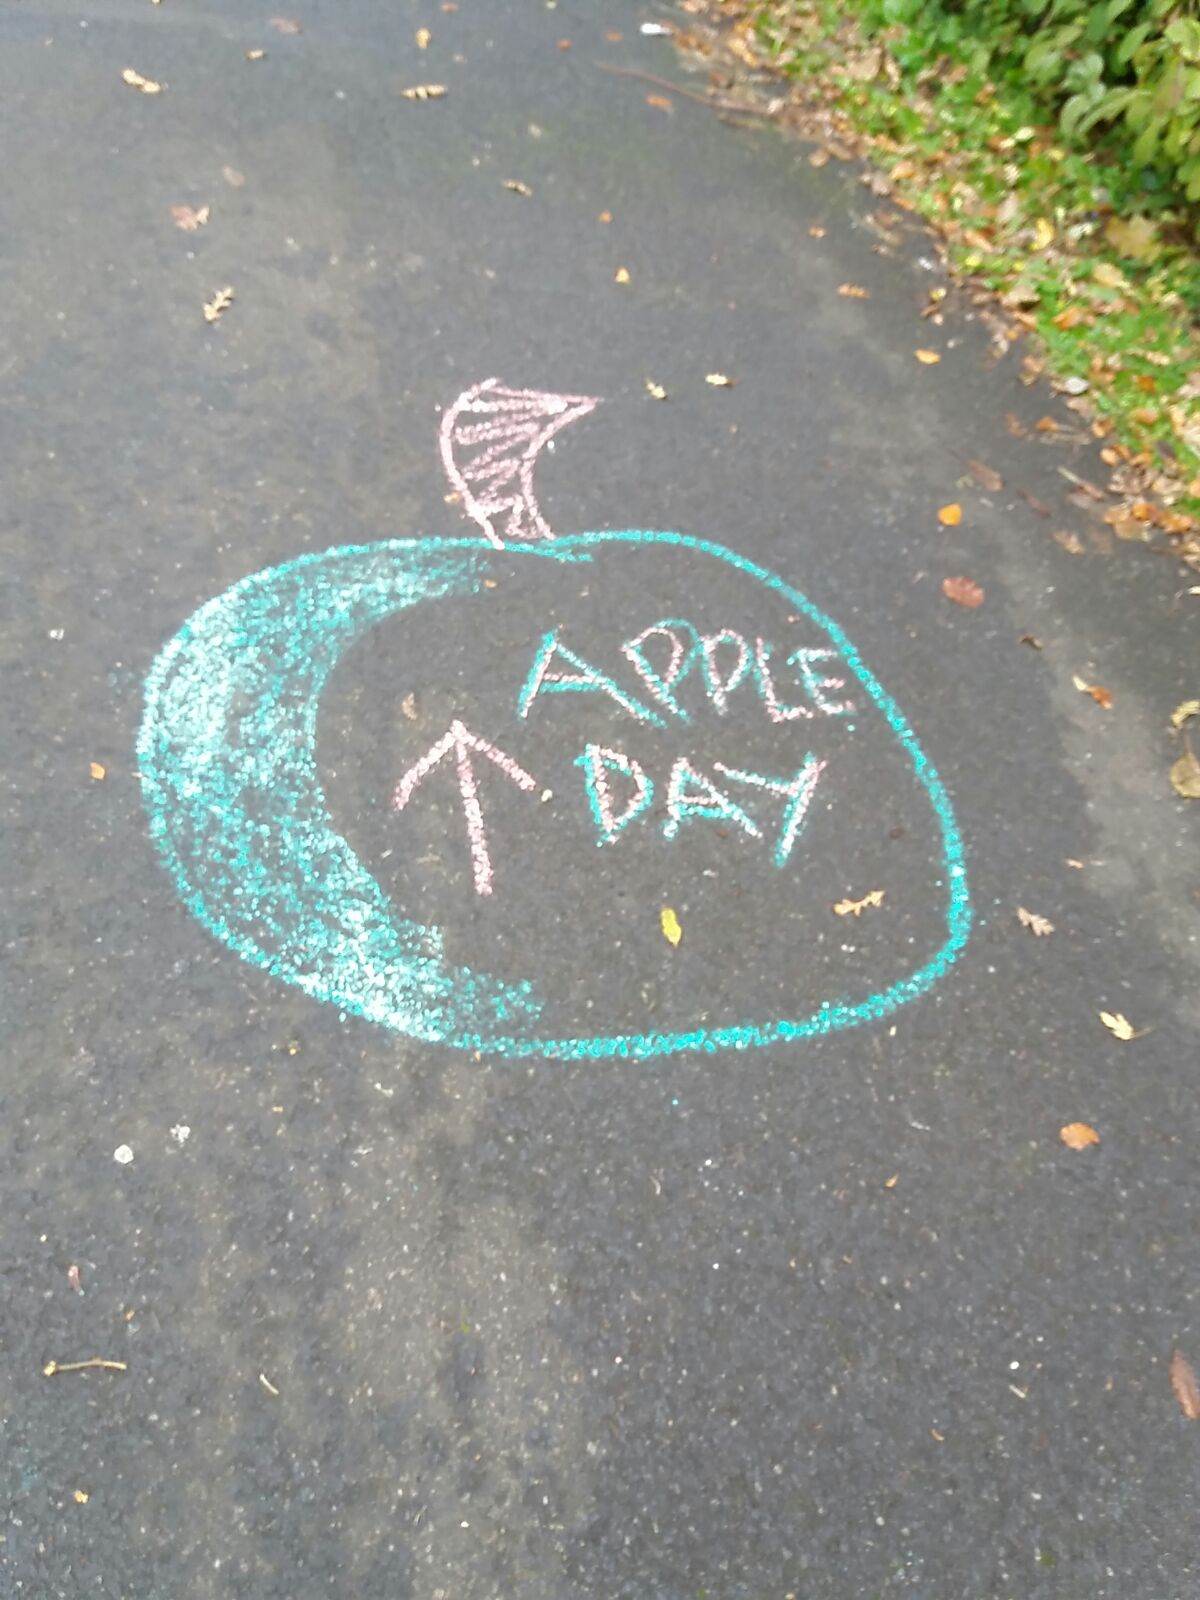 Bike Garden Apple Day